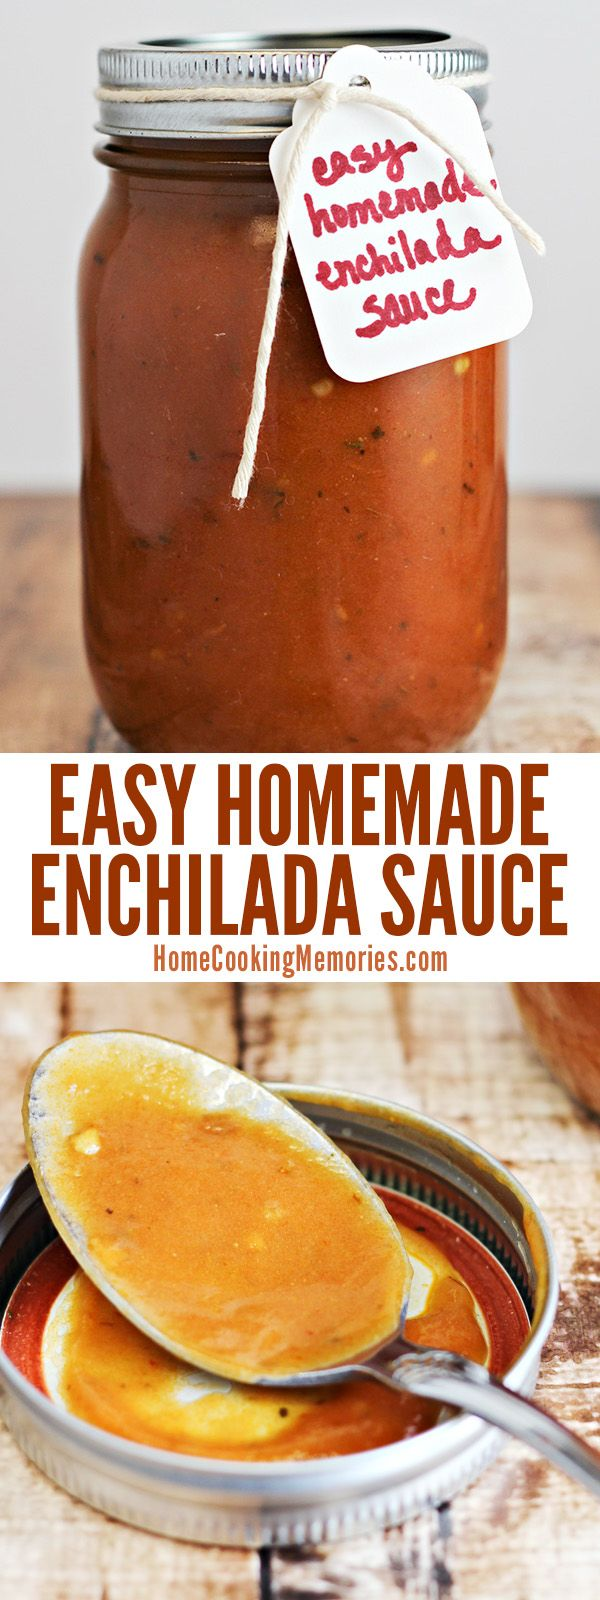 Skip the canned enchilada sauce - this easy homemade enchilada sauce is full of amazing flavor! It's made with mostly pantry ingredients and it won't take you long to make.